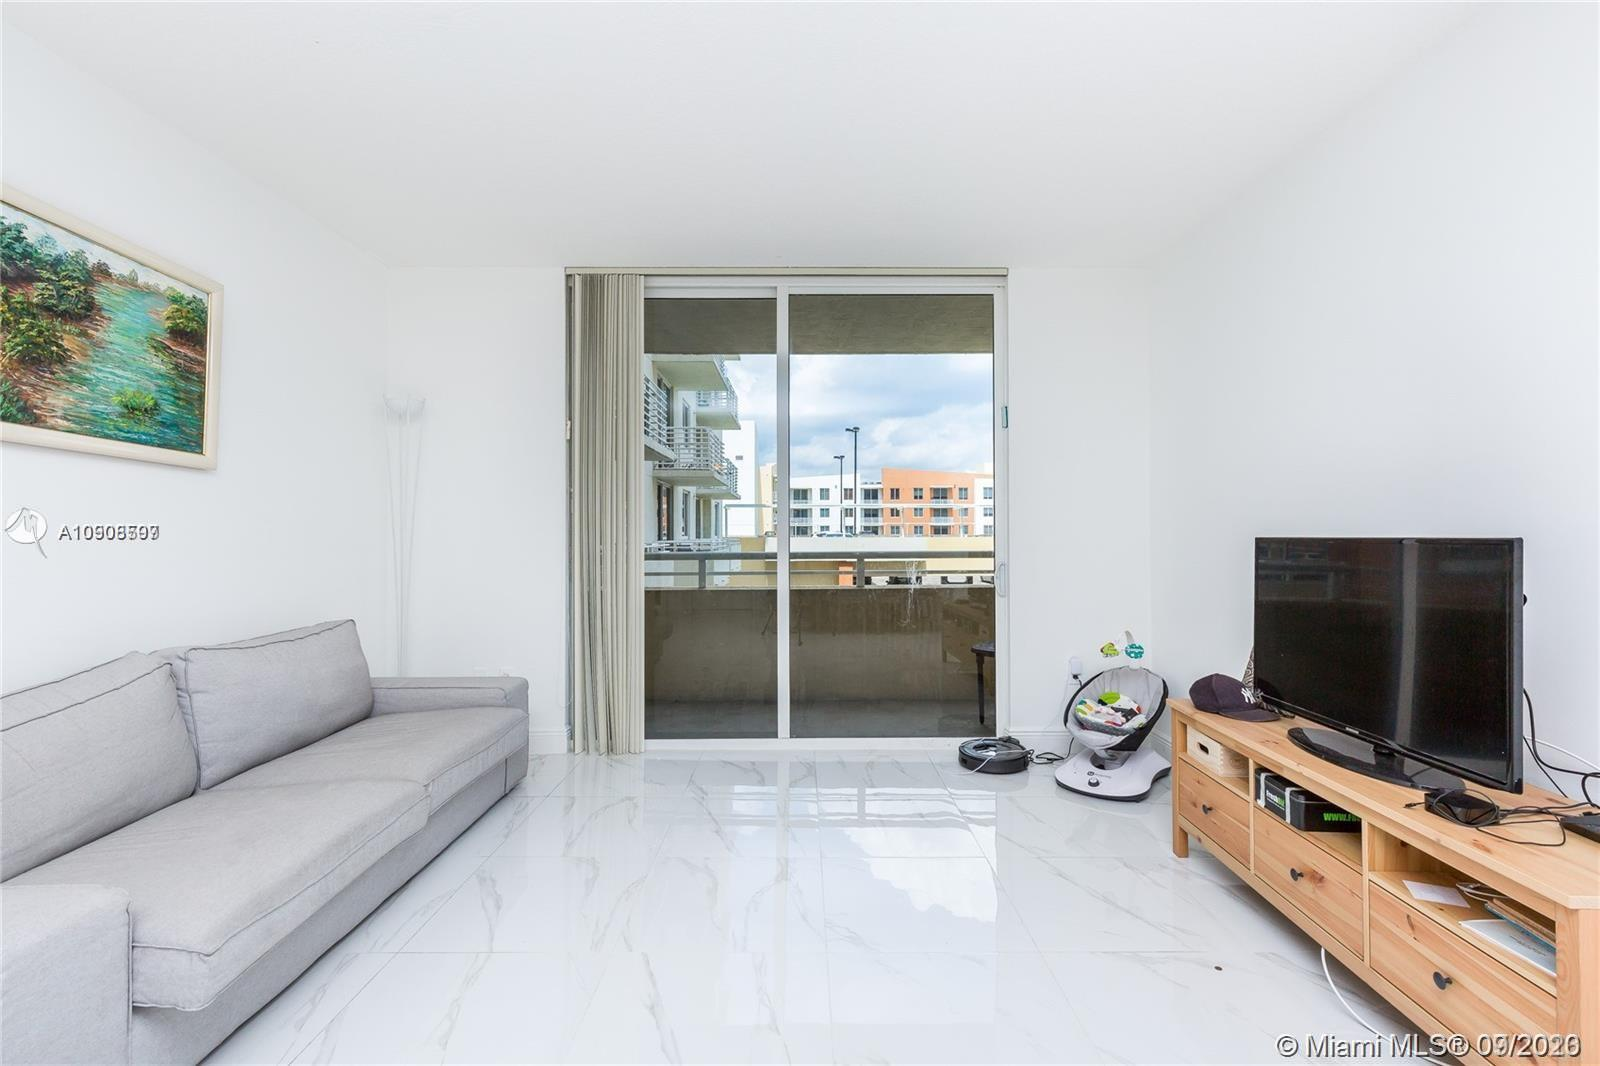 Great opportunity for a 2/2 in the heart of Aventura. Excellent schools, walking distance to shops,